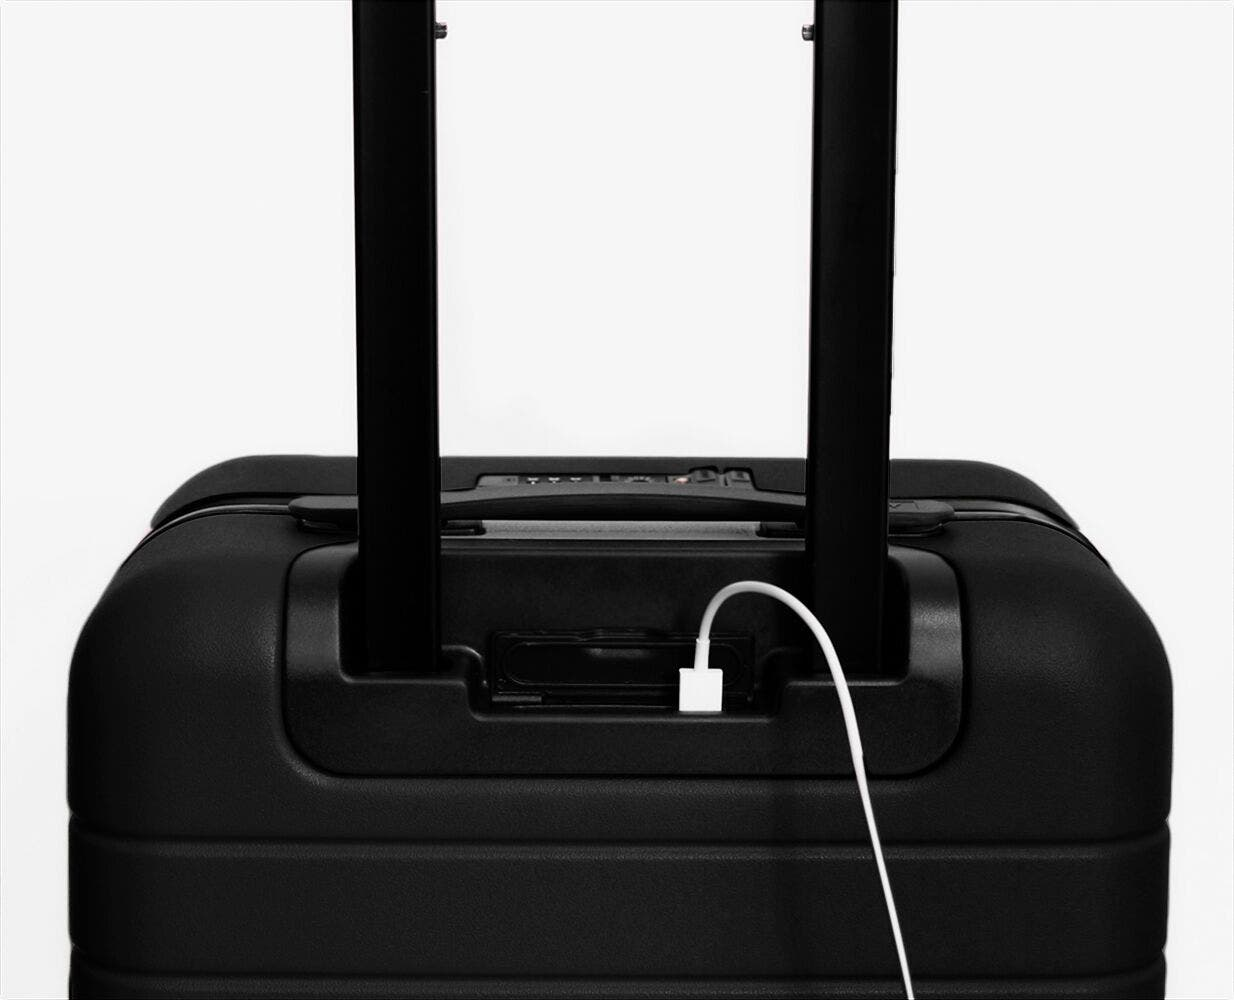 Video showing a finger pressing the battery to eject it from The Bigger Carry-On with Pocket in Black